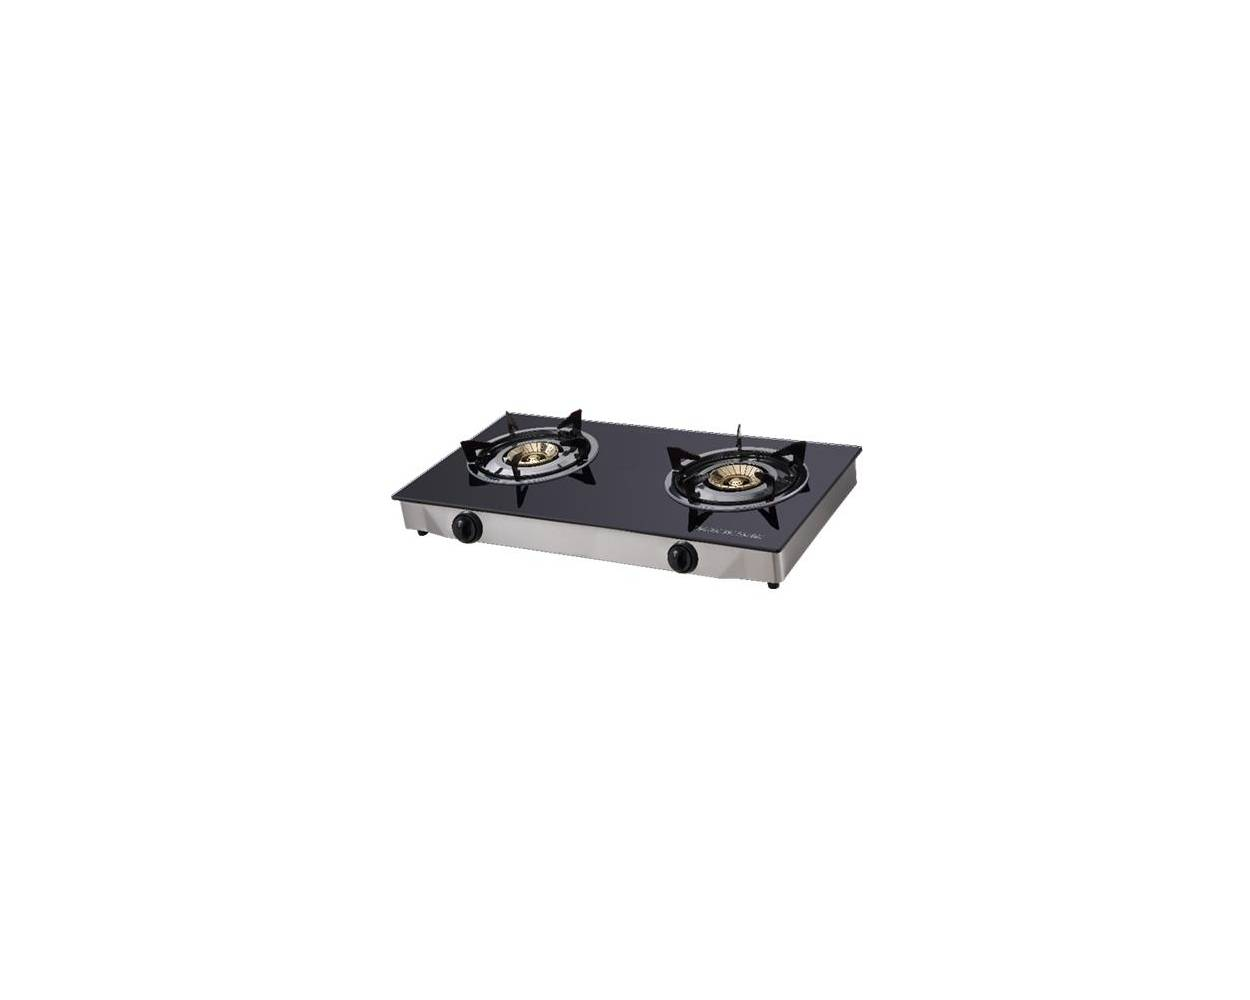 Scanfrost Table Glass Top Gas Cooker – SFTTC2004